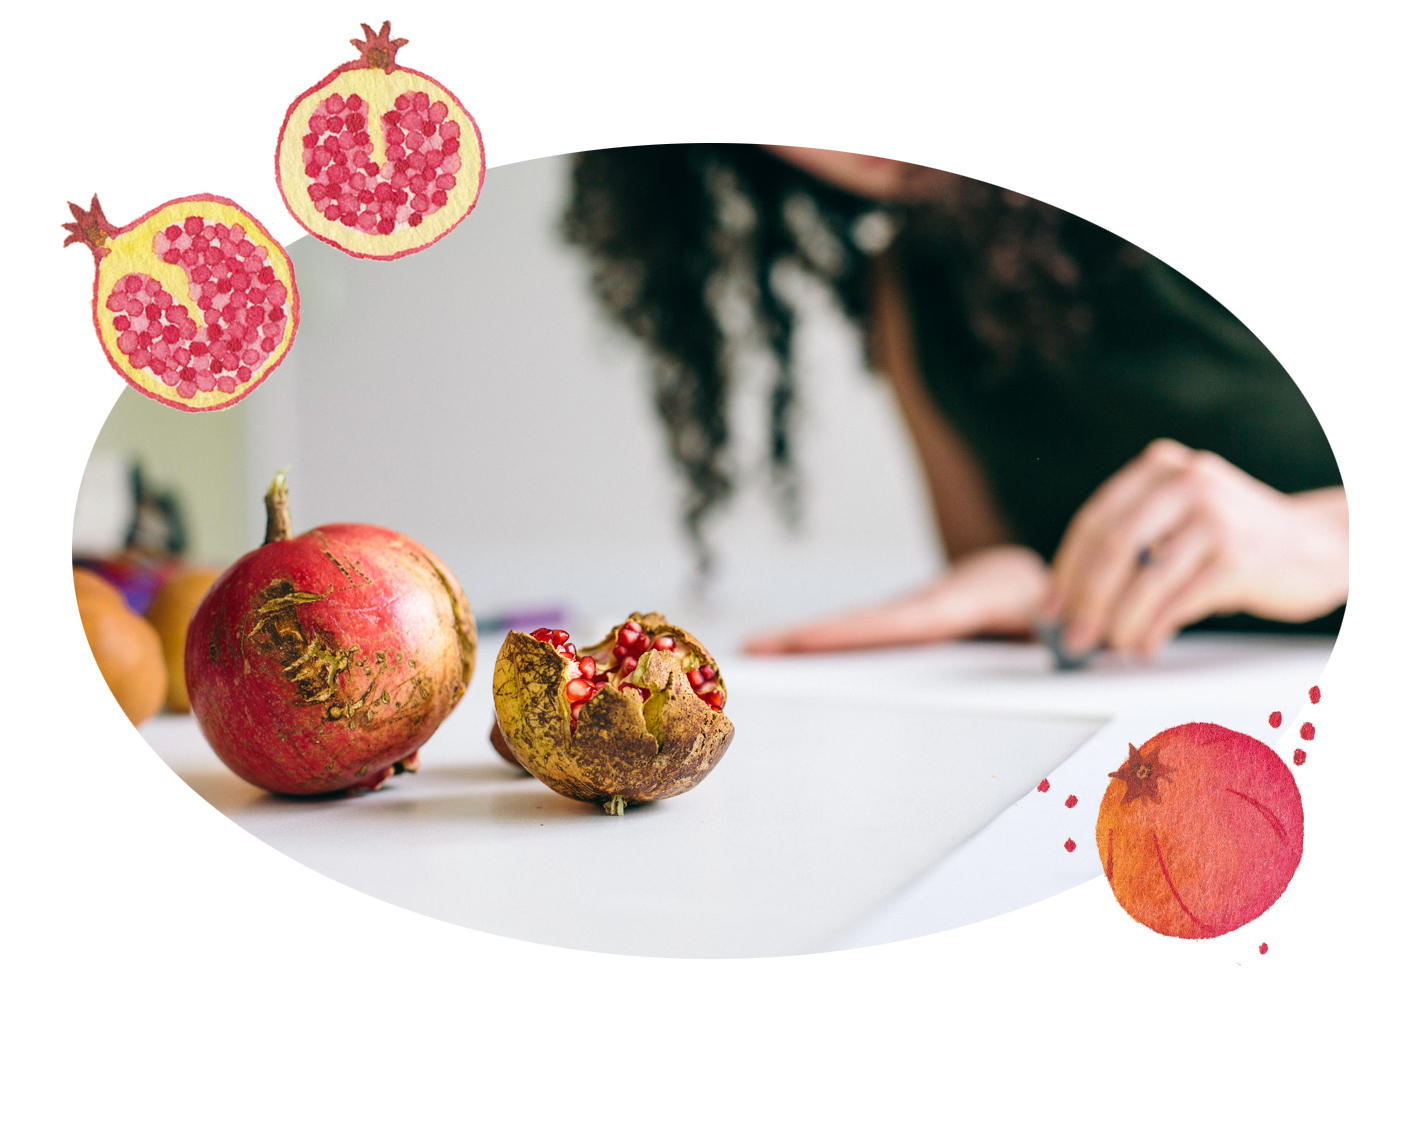 miss yasemin drawing with painted pomegranates on top